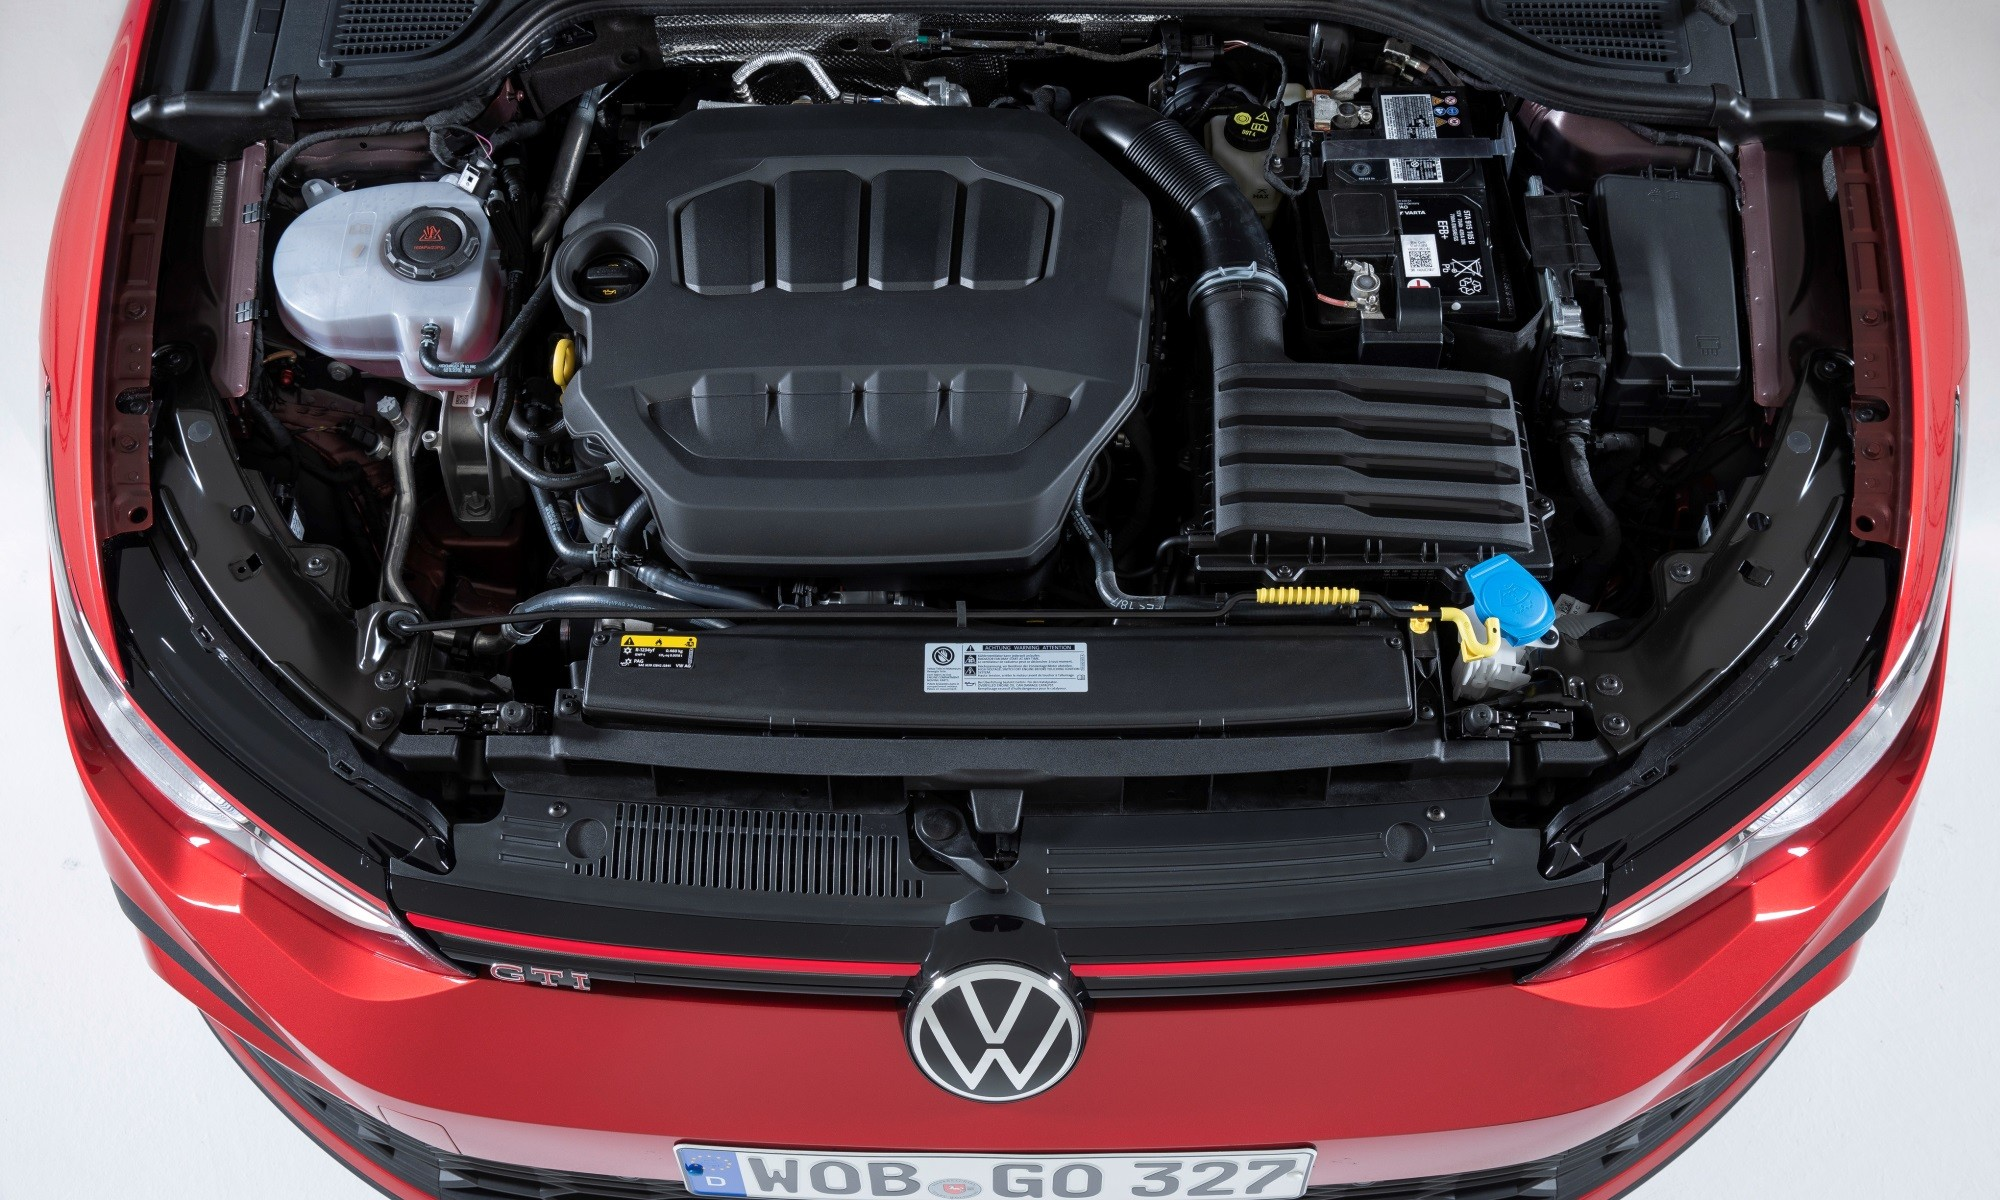 VW Golf 8 GTI engine